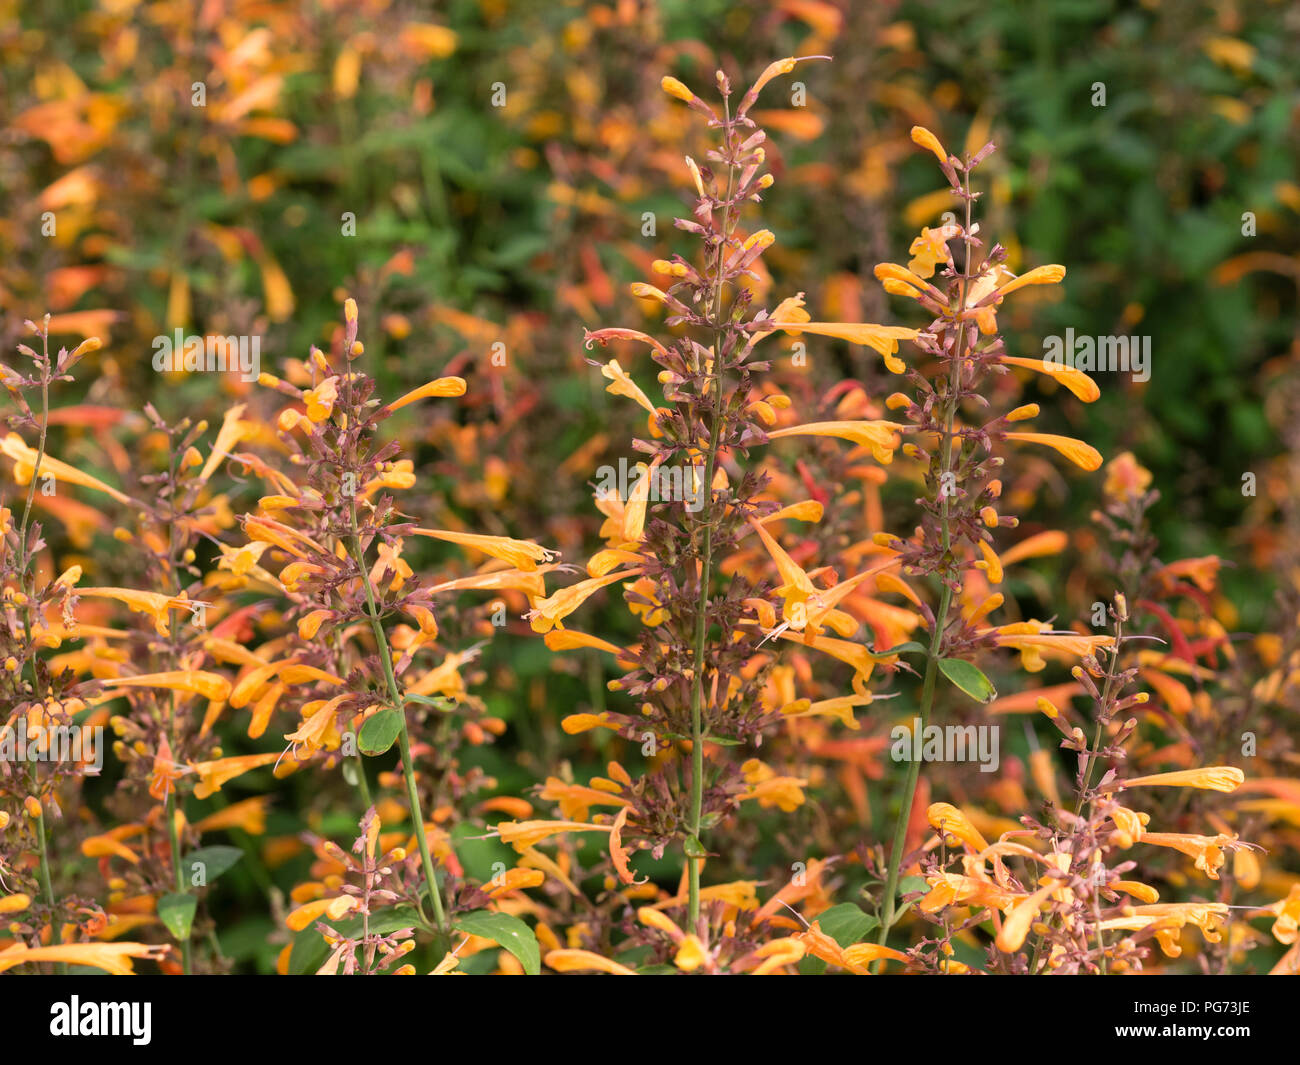 Tubular, pale orange flowers of the tender giant hyssop, Agastache aurantiaca 'Apricot Sprite', are carried summer long - Stock Image